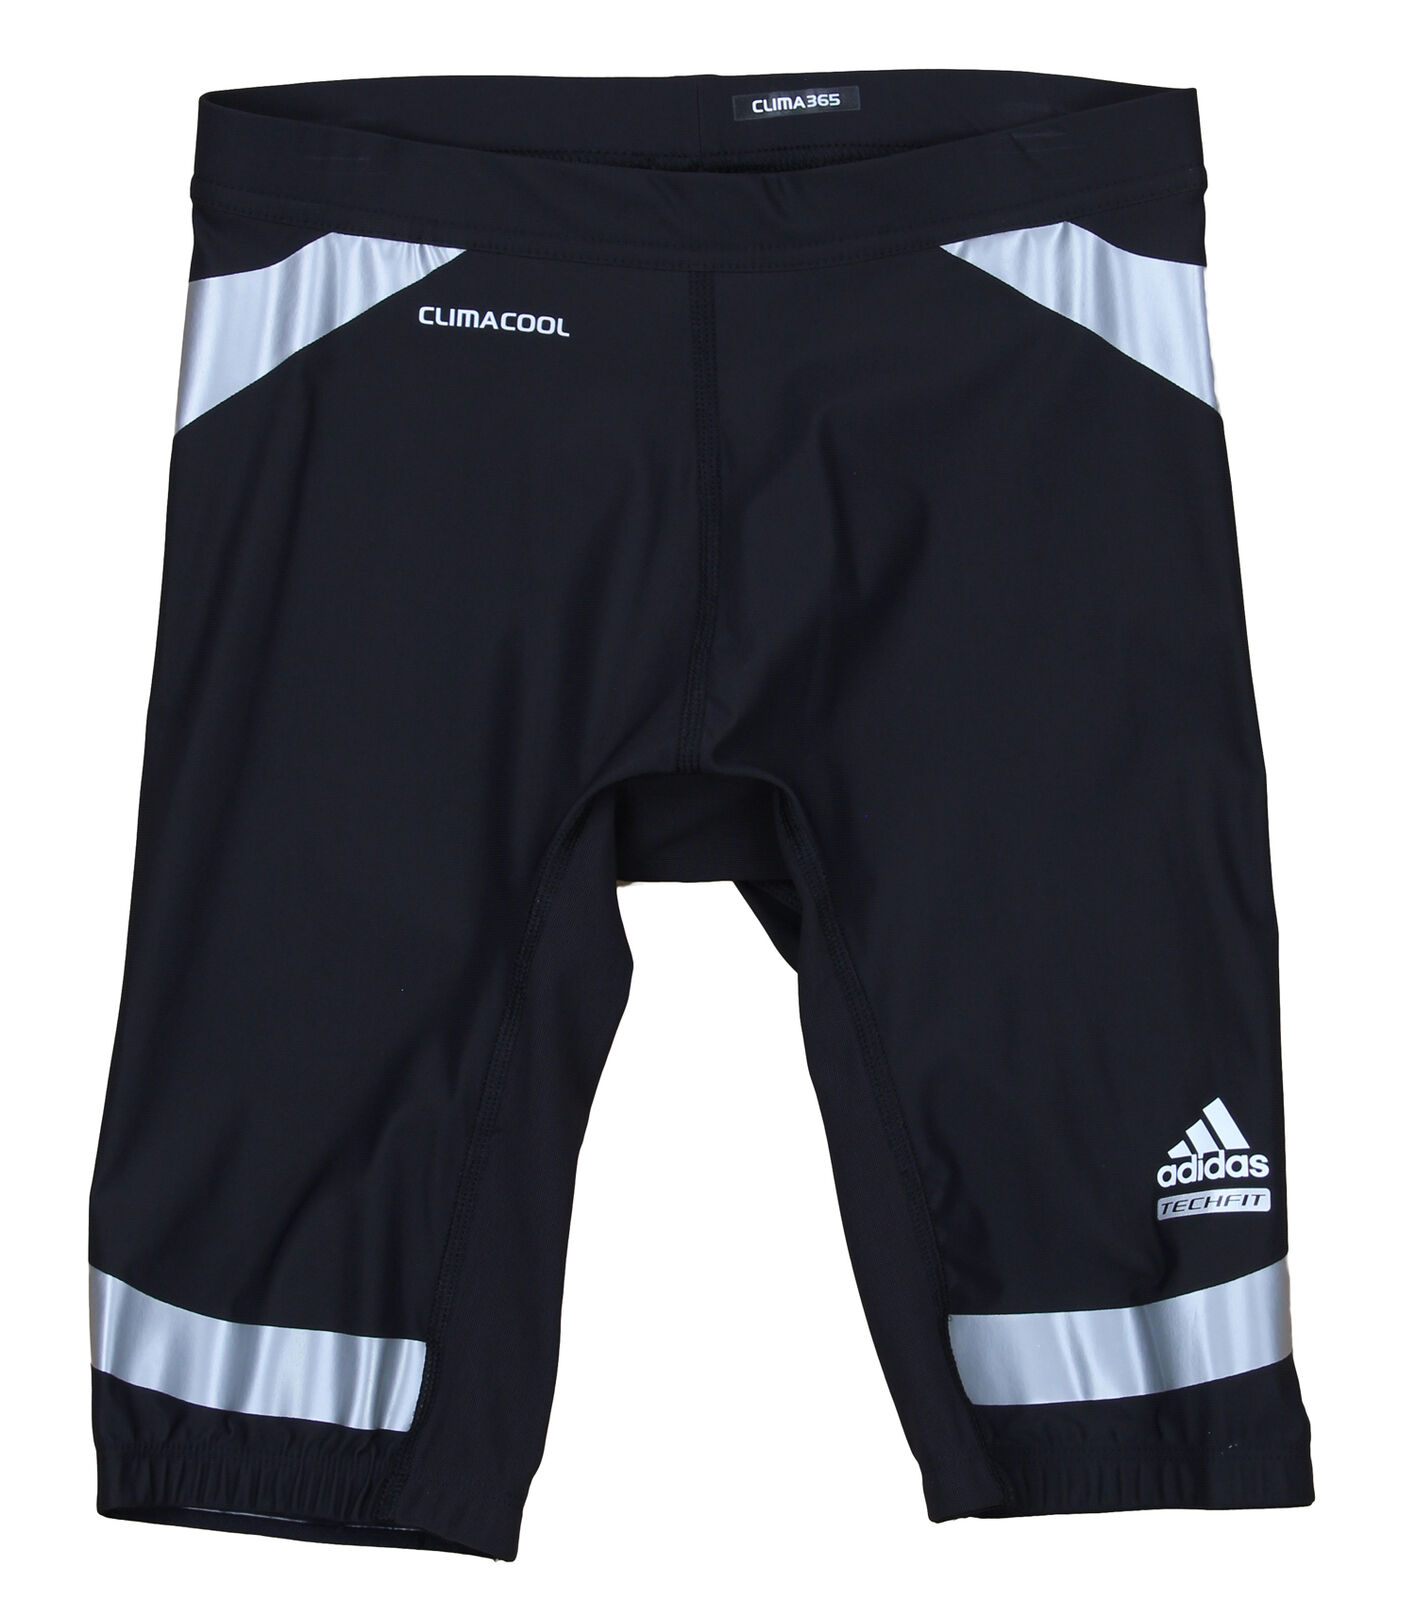 cascada horario Cuidado  adidas Techfit PowerWeb Compression Baselayer Shorts XL P92400 for sale  online | eBay